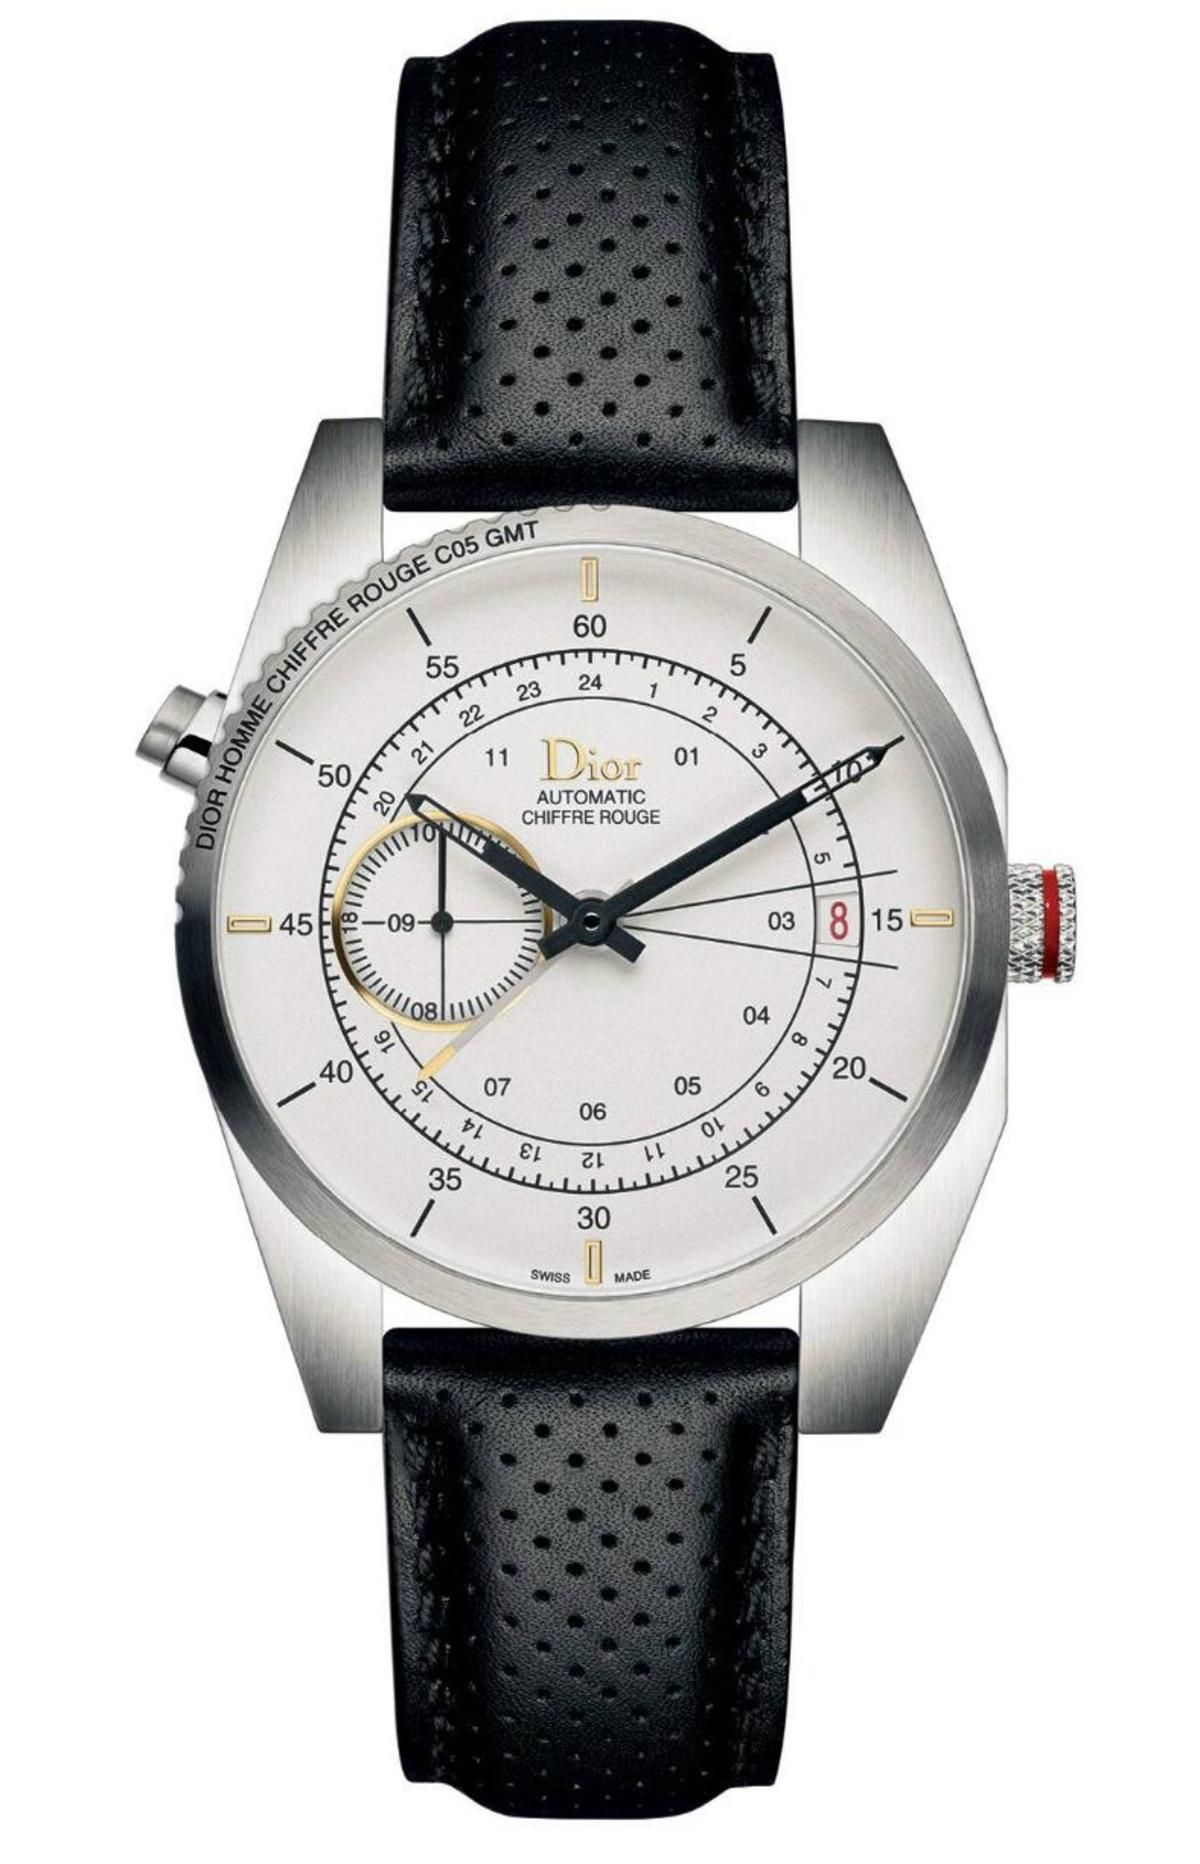 019f24e0bd7 Dior Chiffre Rouge C05 Automatic GMT. For the fashion-conscious traveler.